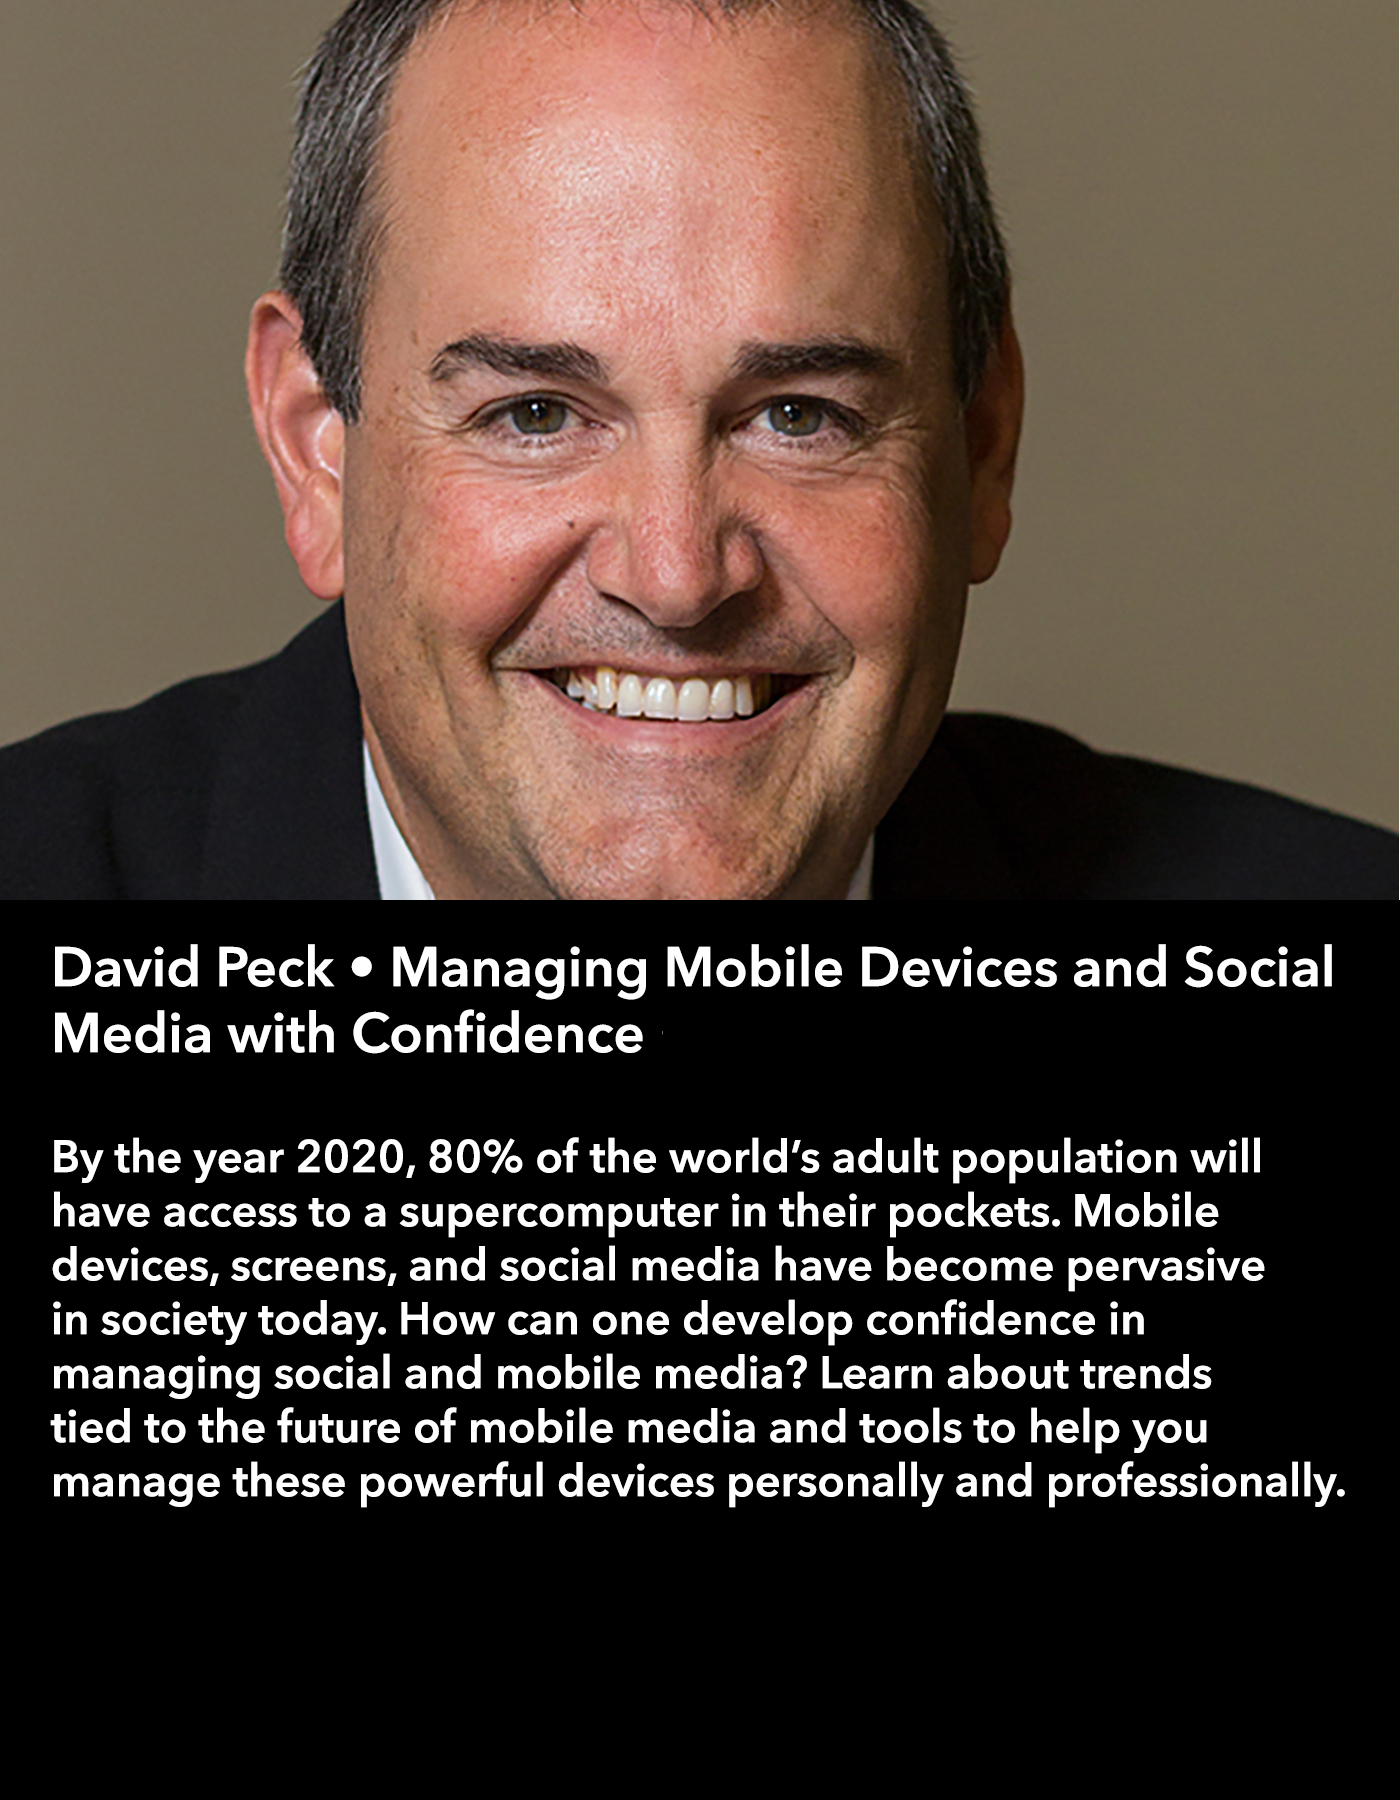 David Peck • Managing Mobile Devices and Social Media with Confidence • Friday Afternoon, March 17 • 3:30 – 4:45 pm